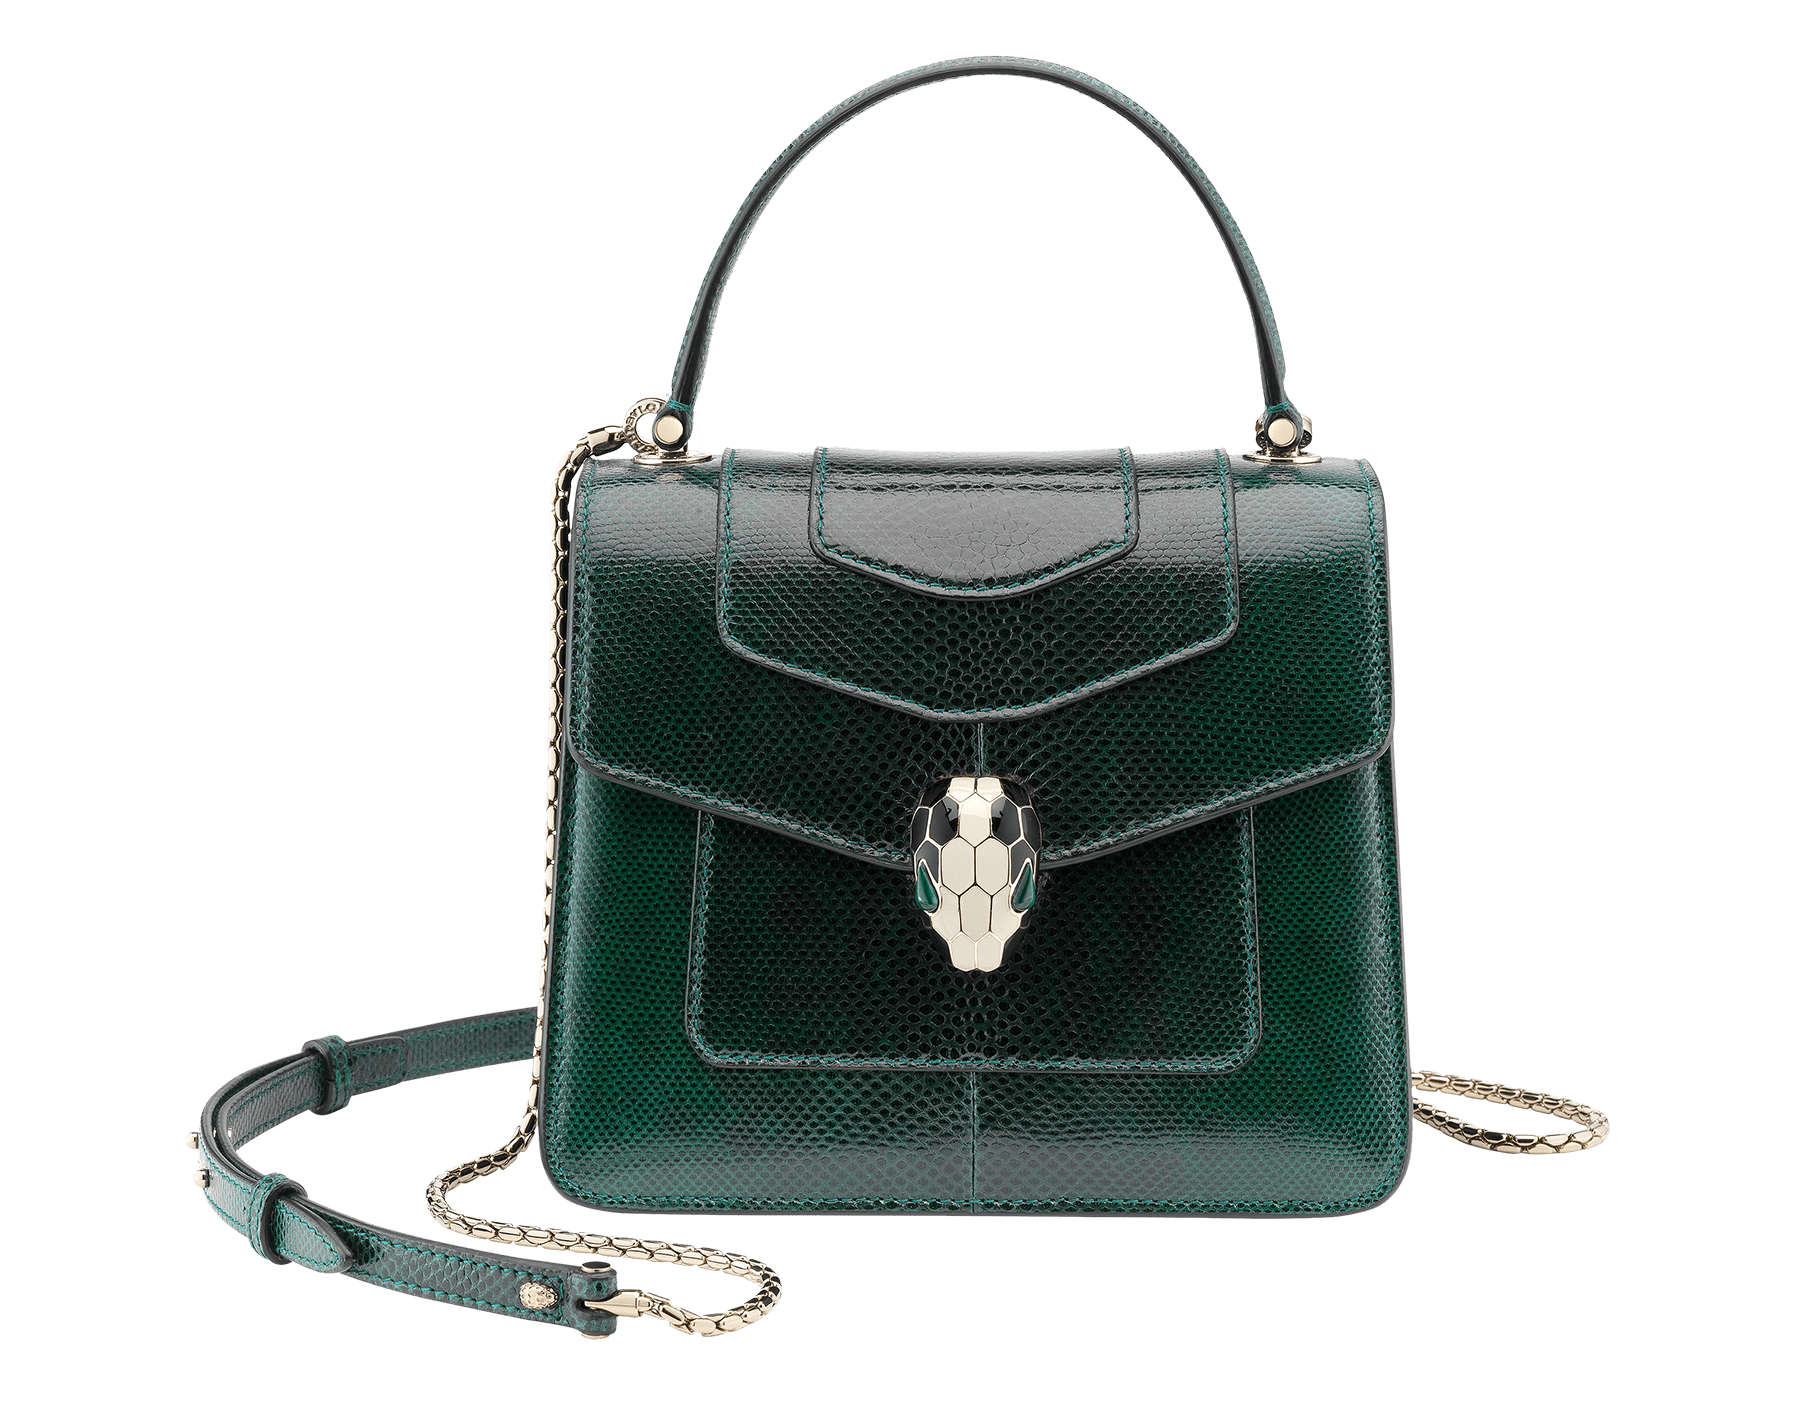 Flap cover bag Serpenti Forever in forest emerald shiny karung skin. Brass light gold plated hardware and snake head closure in black and white enamel with eyes in green malachite. 283517 image 1